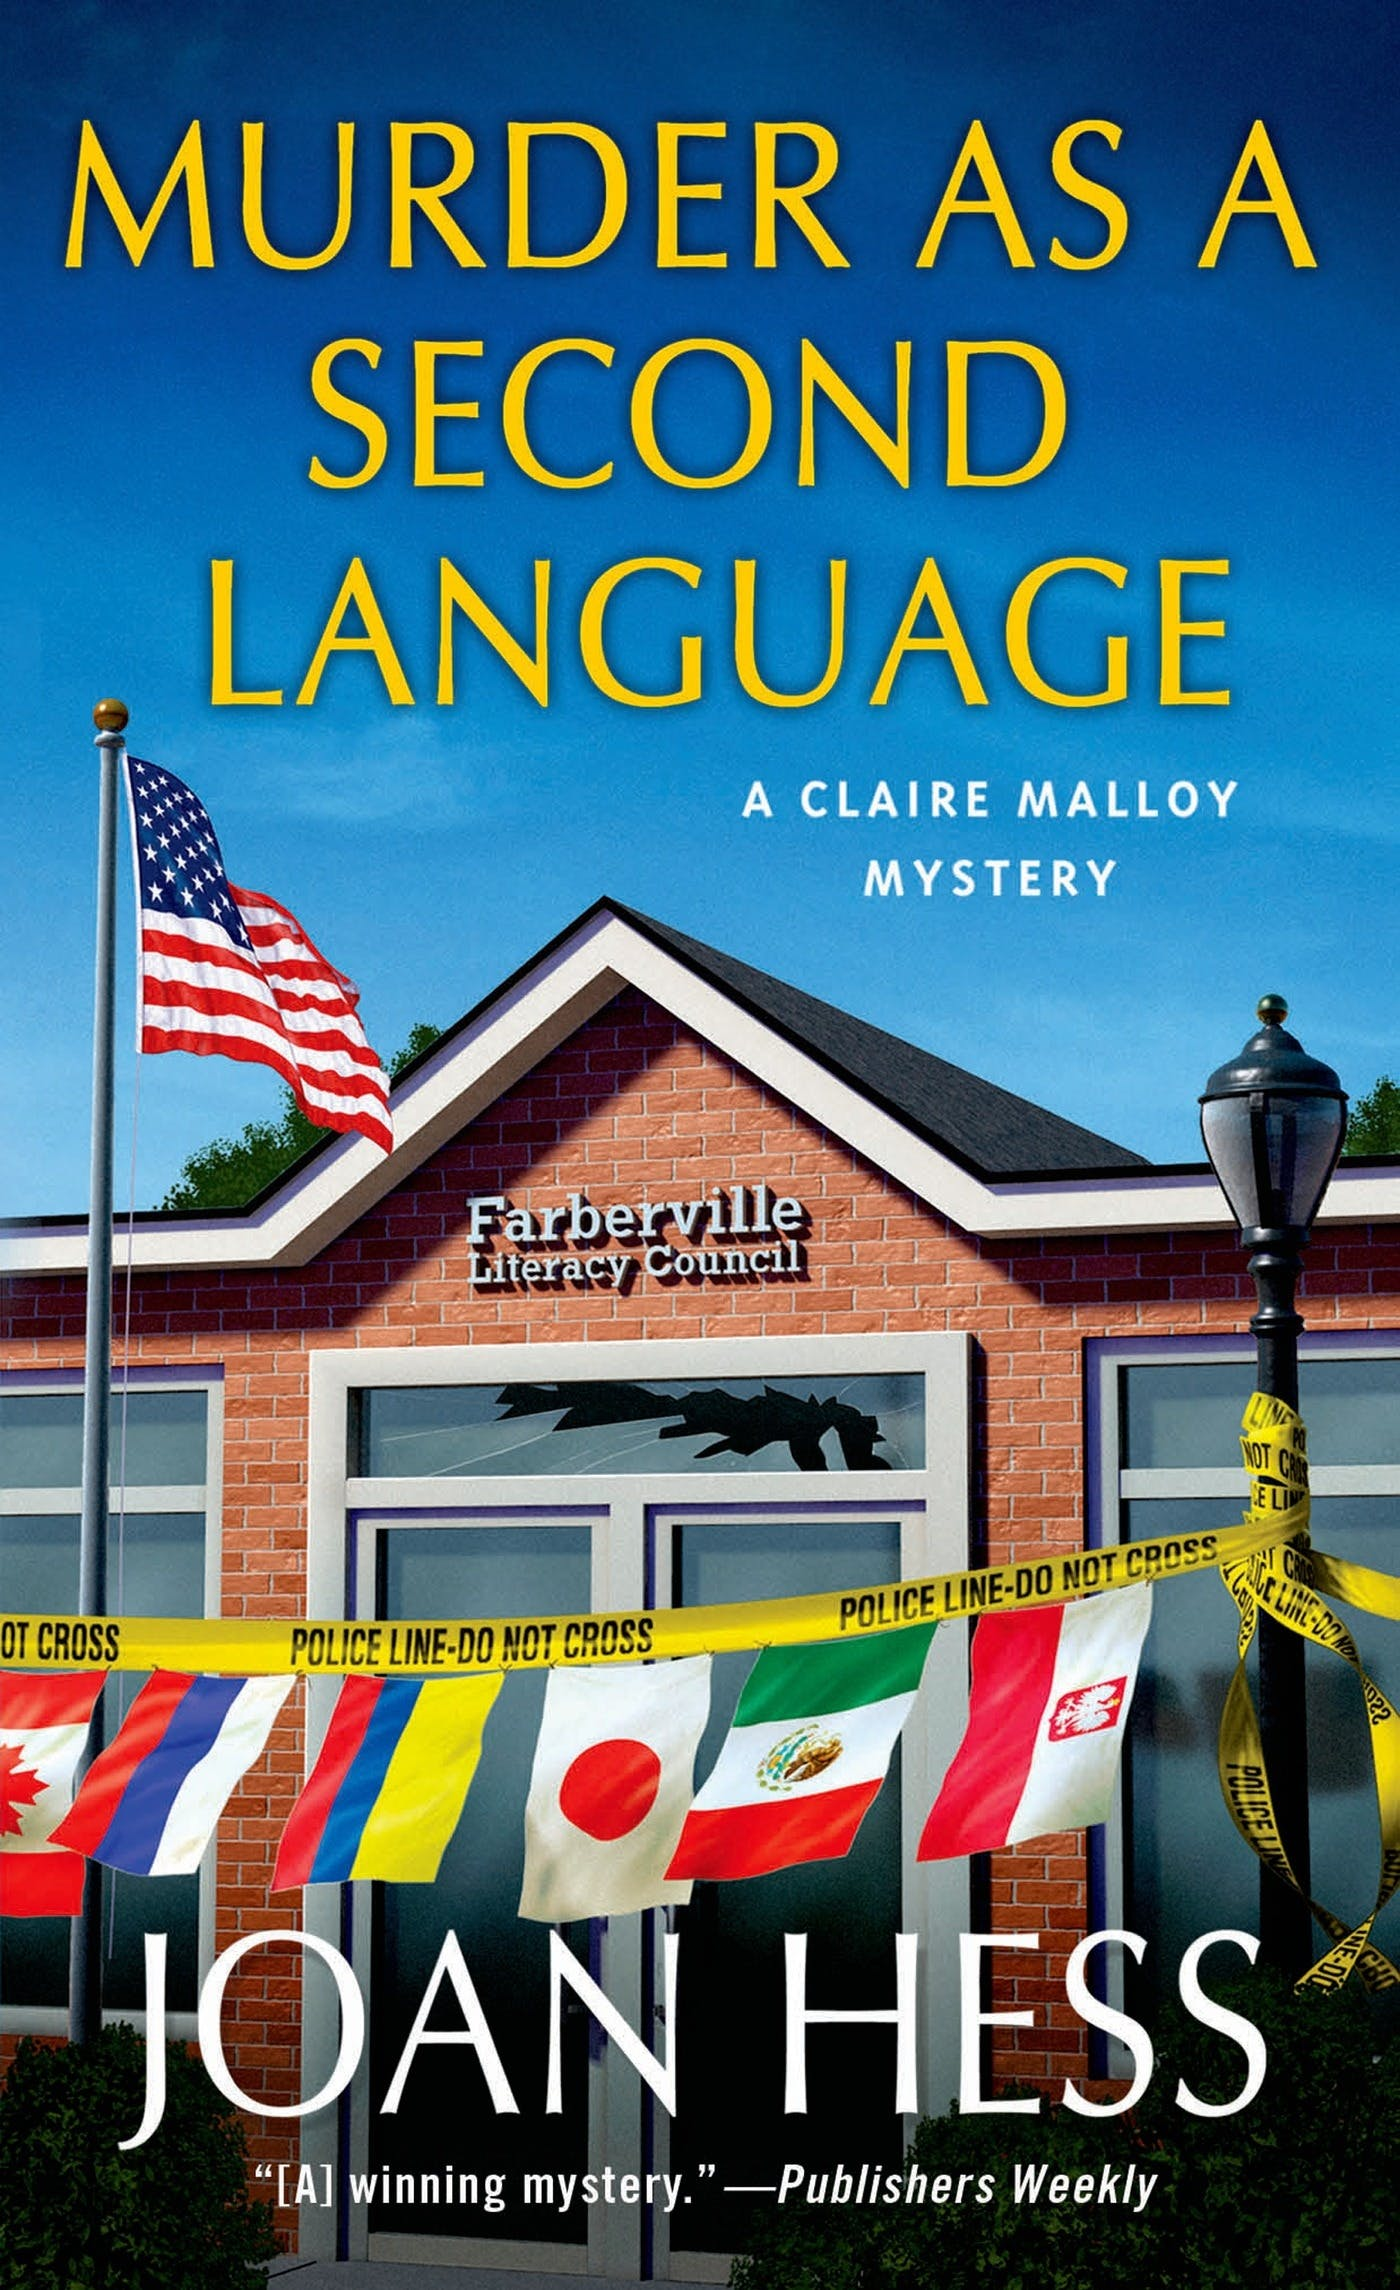 Image of Murder as a Second Language